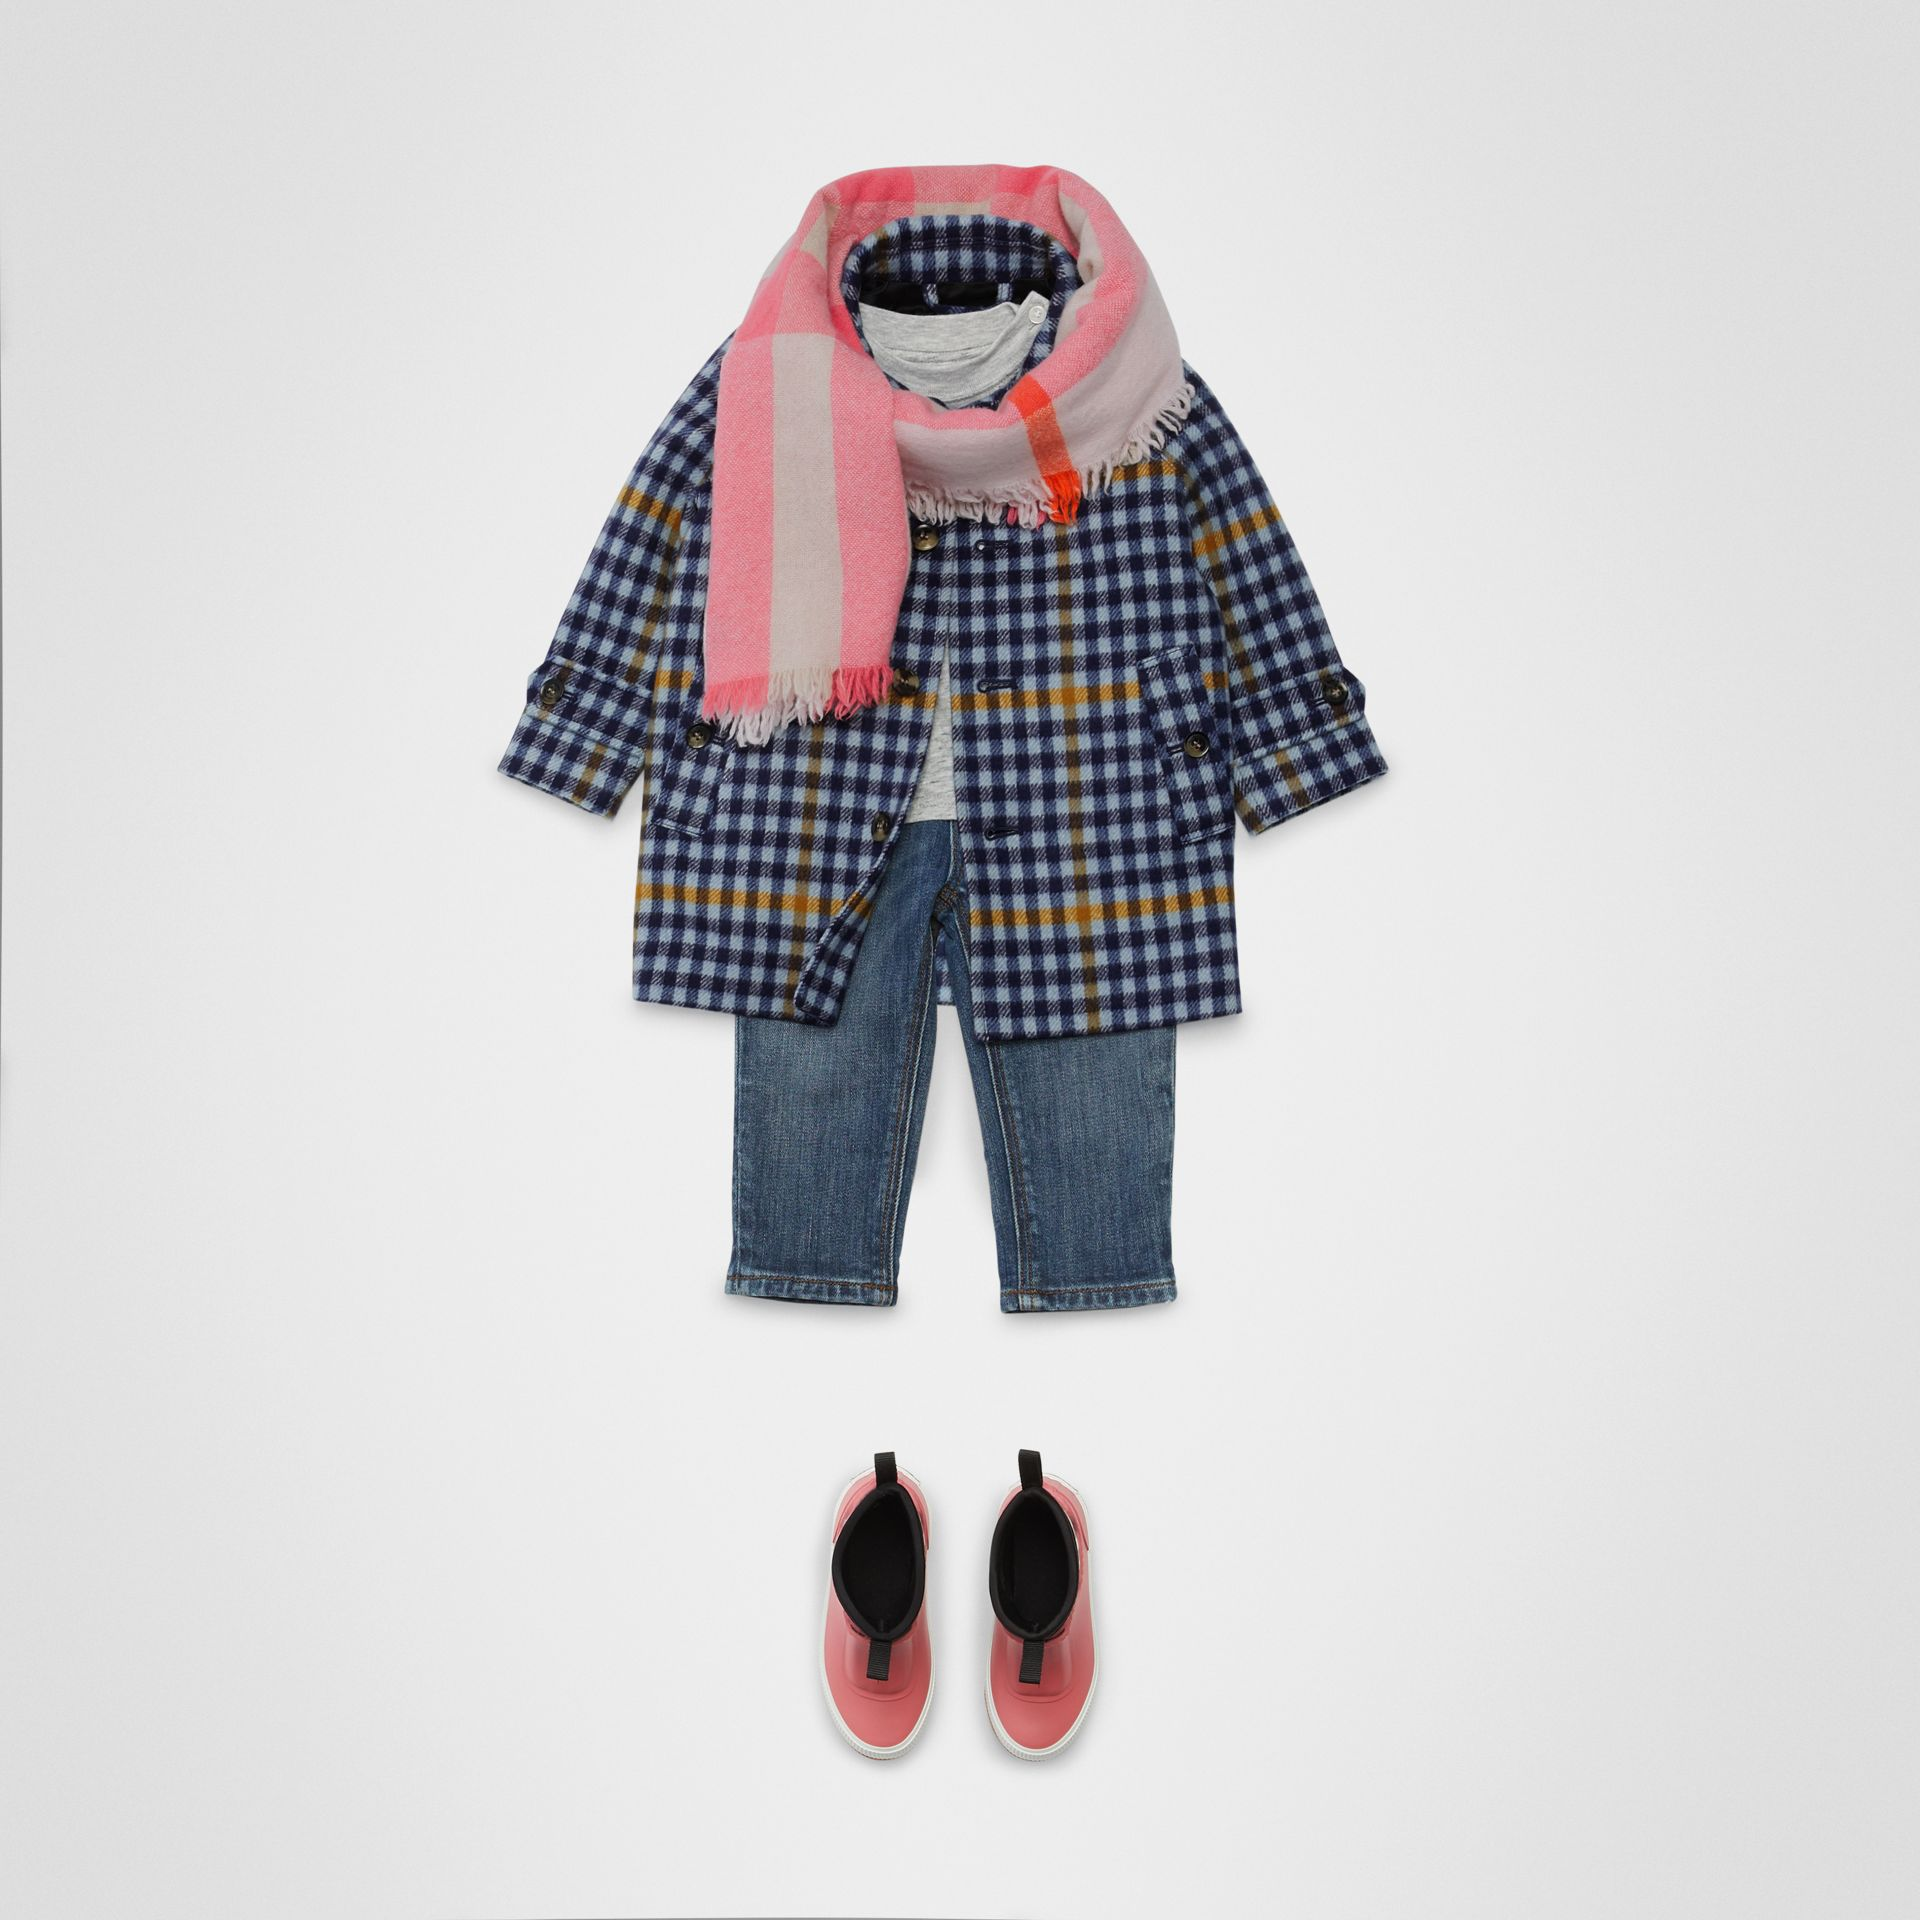 Paletot en laine à motif check (Bleu Toile) - Enfant | Burberry Canada - photo de la galerie 2